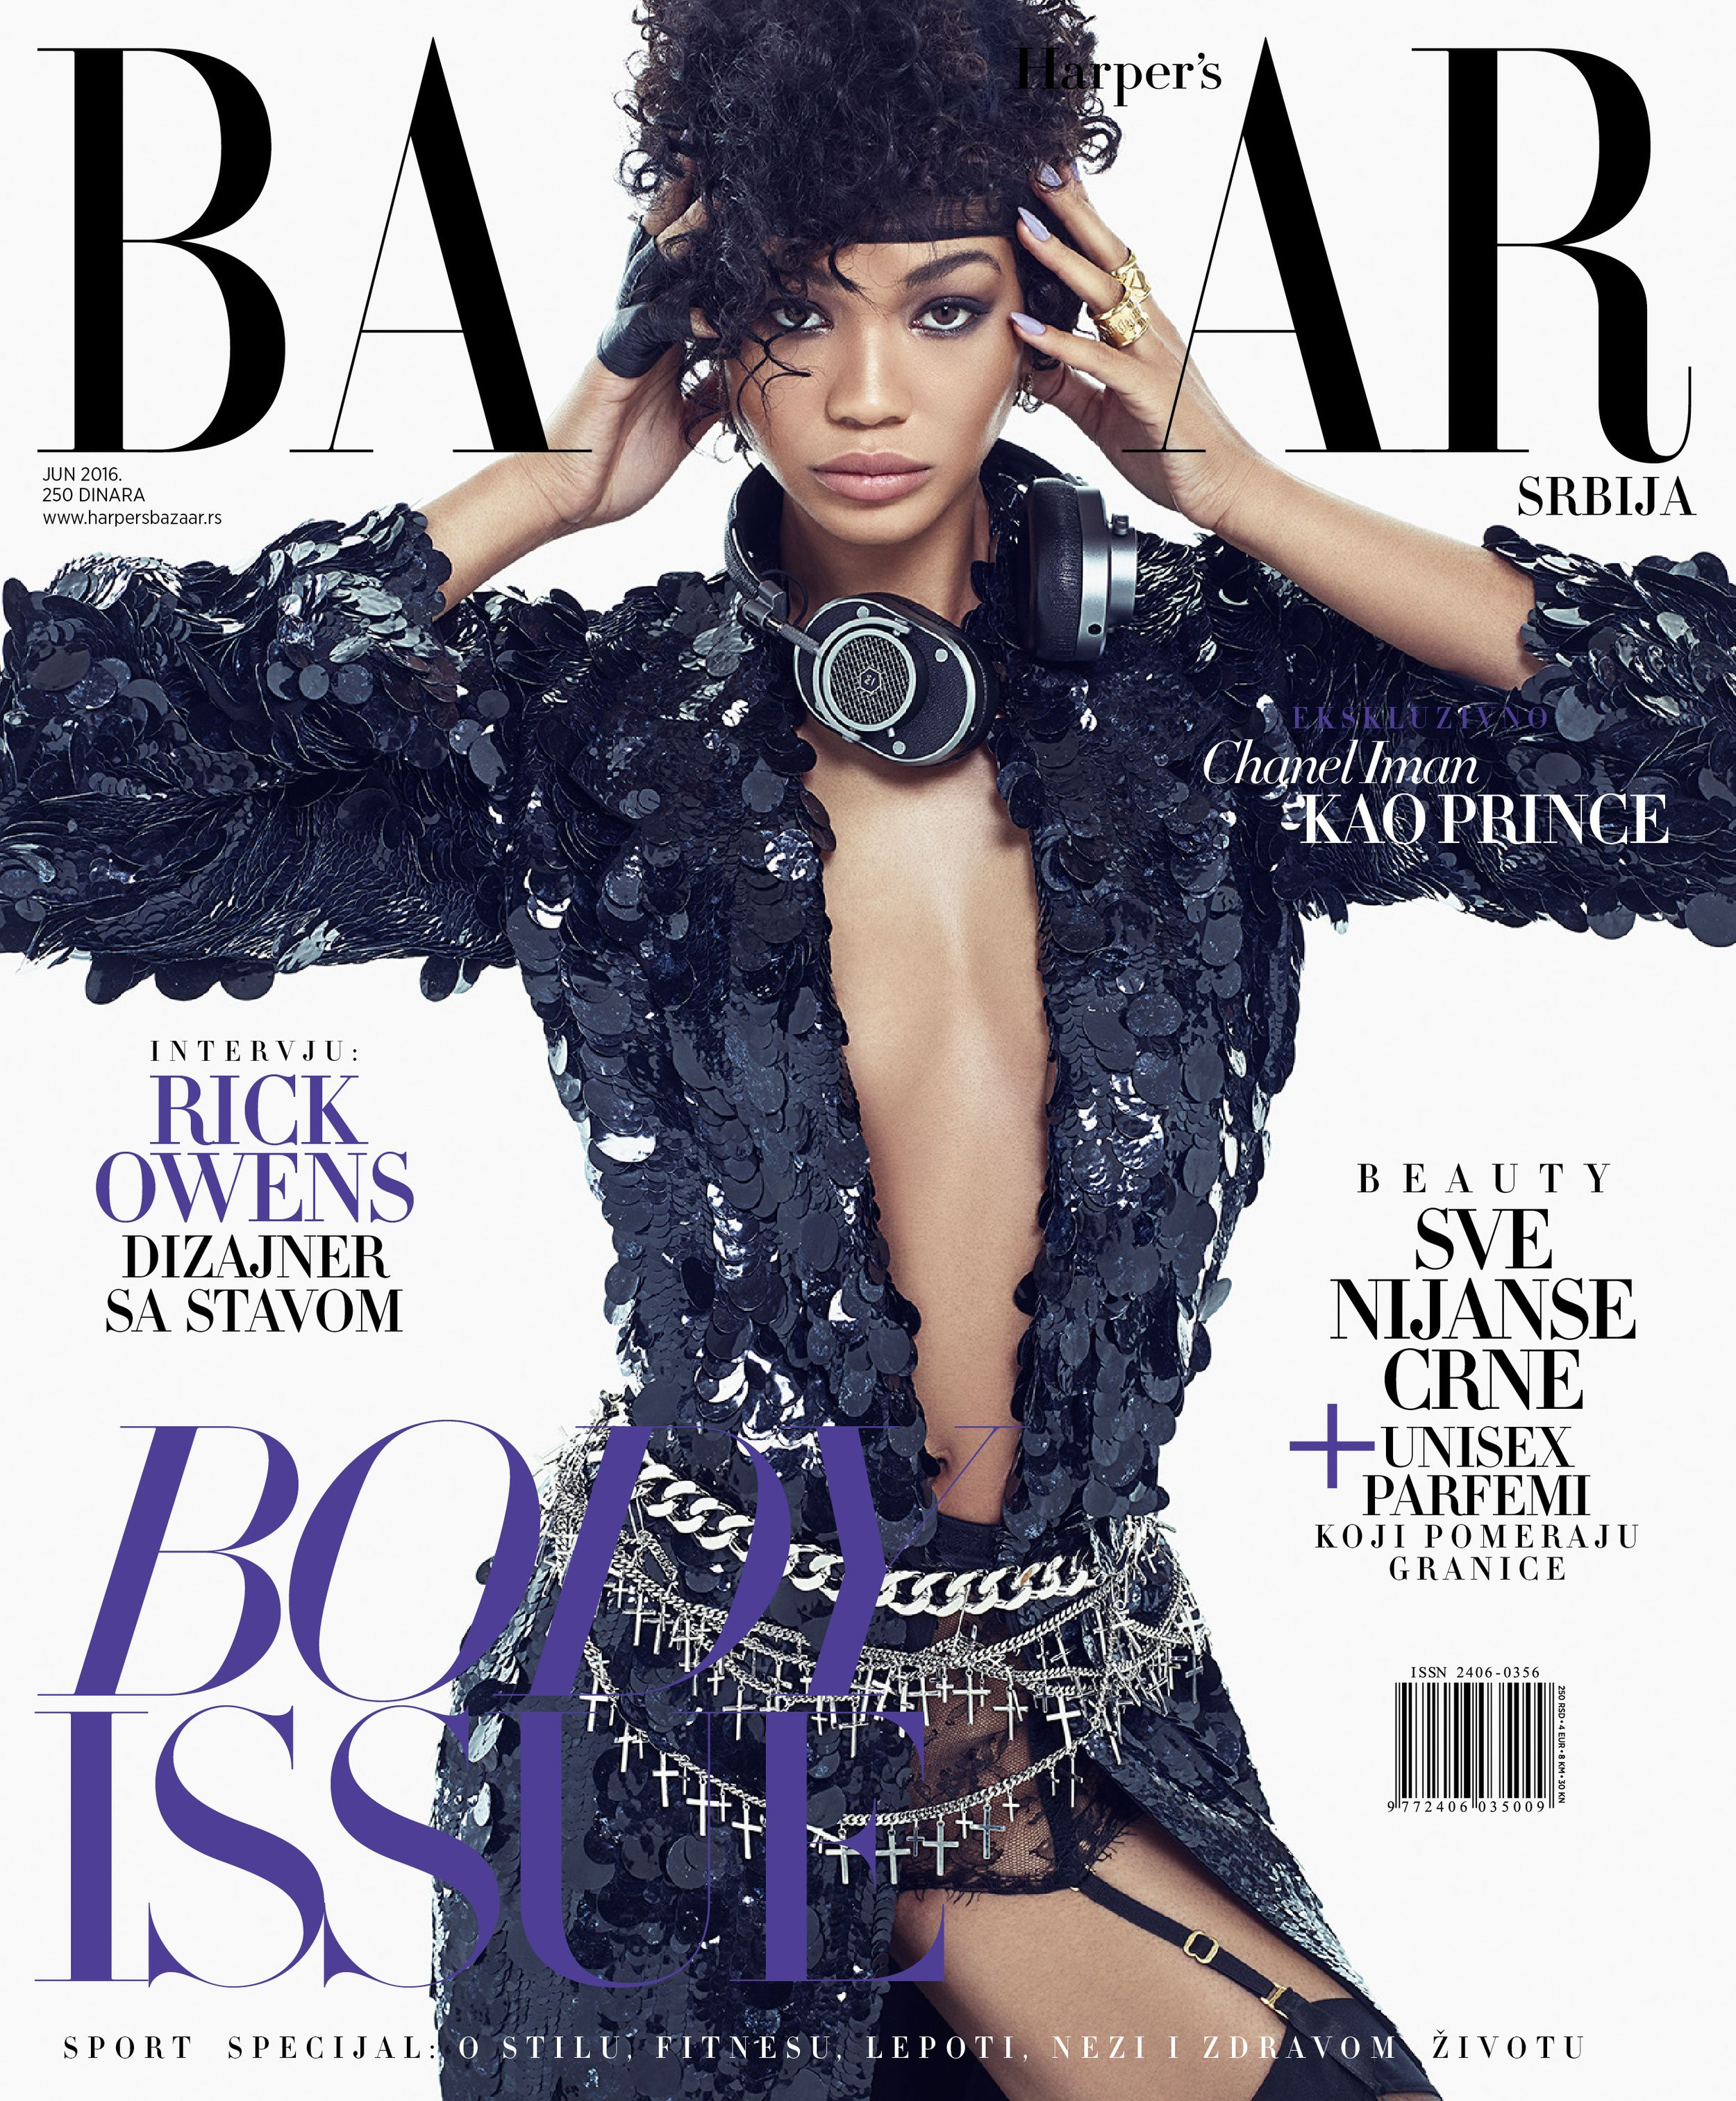 9c8e818fdfb Chanel Iman graces the cover and pages of Harper Bazaar Serbia